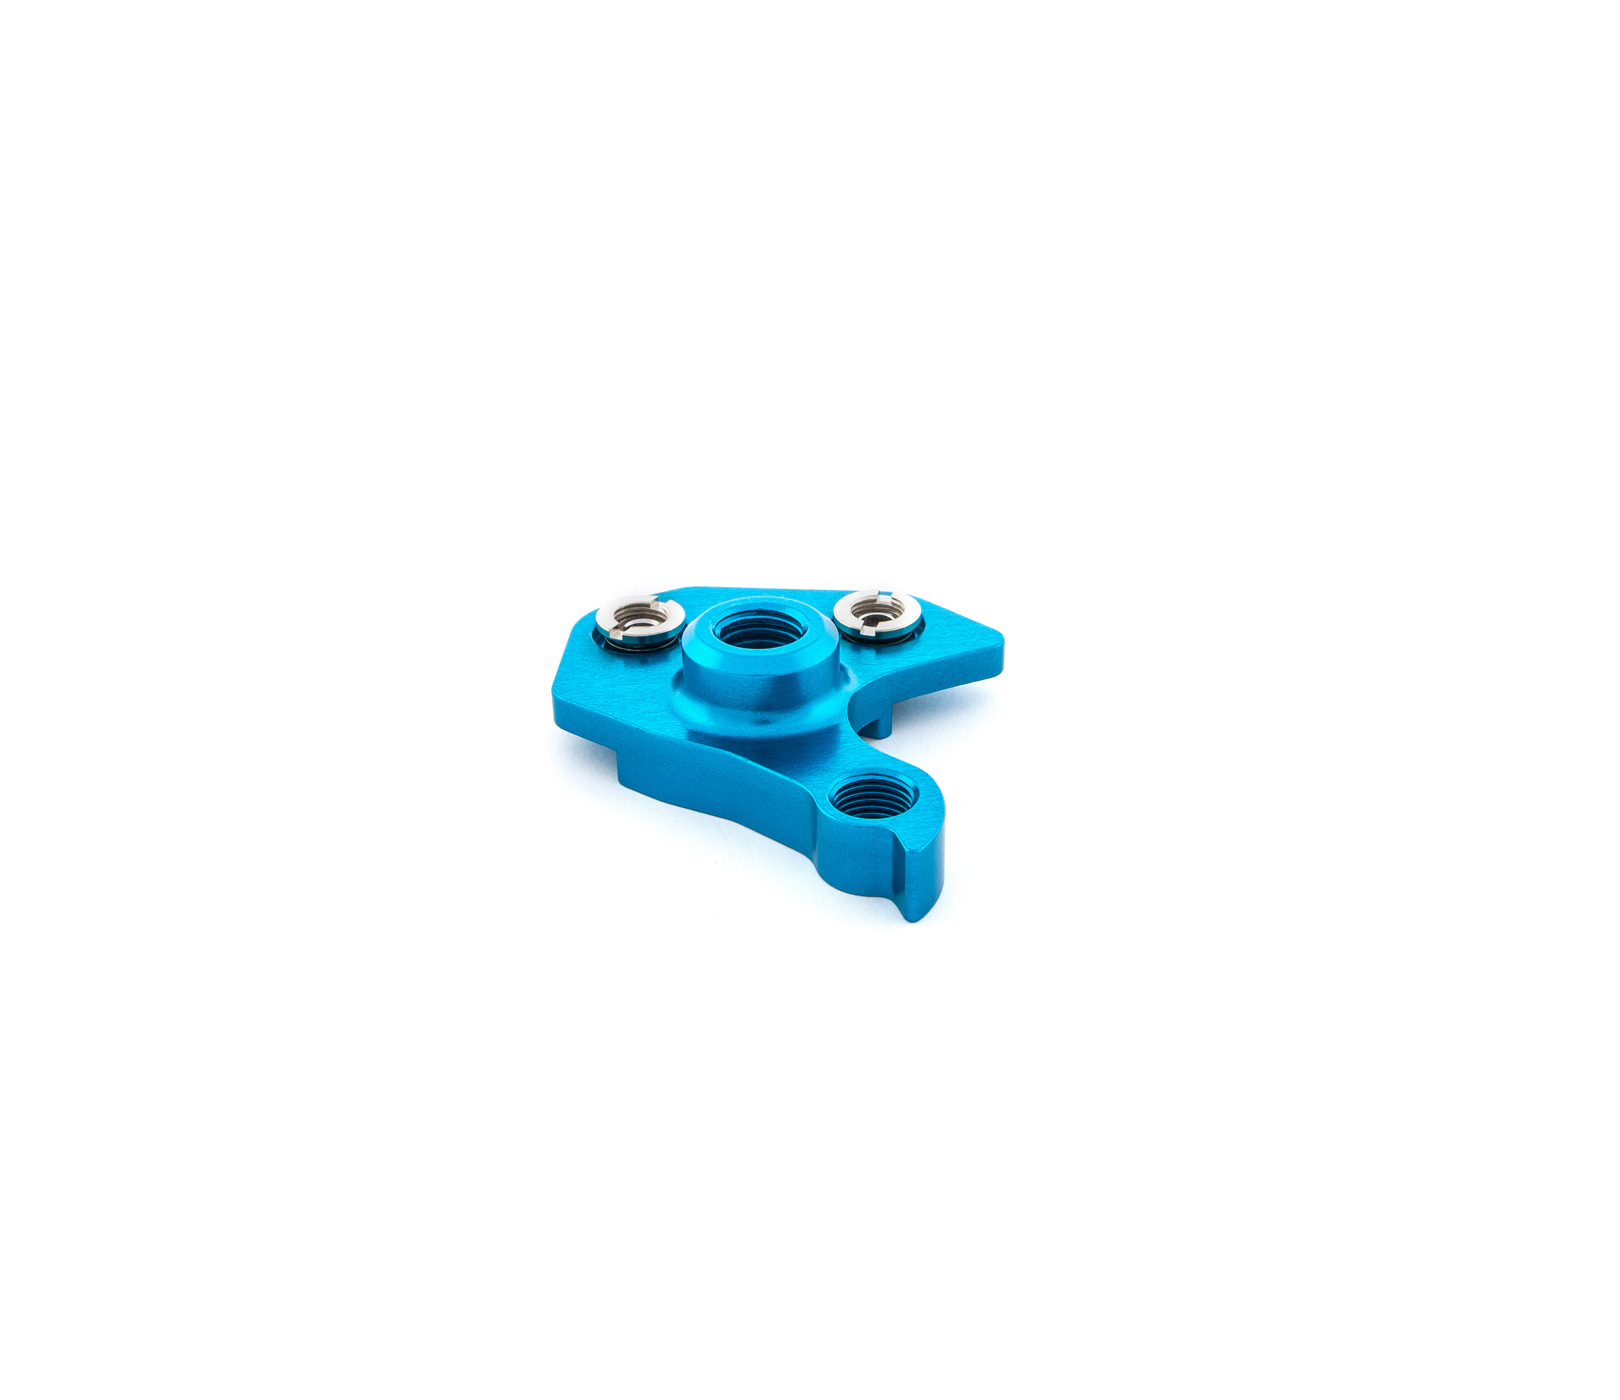 RALLON 12MM RIGHT DROPOUT/DERAILLEUR HANGER - BLUE